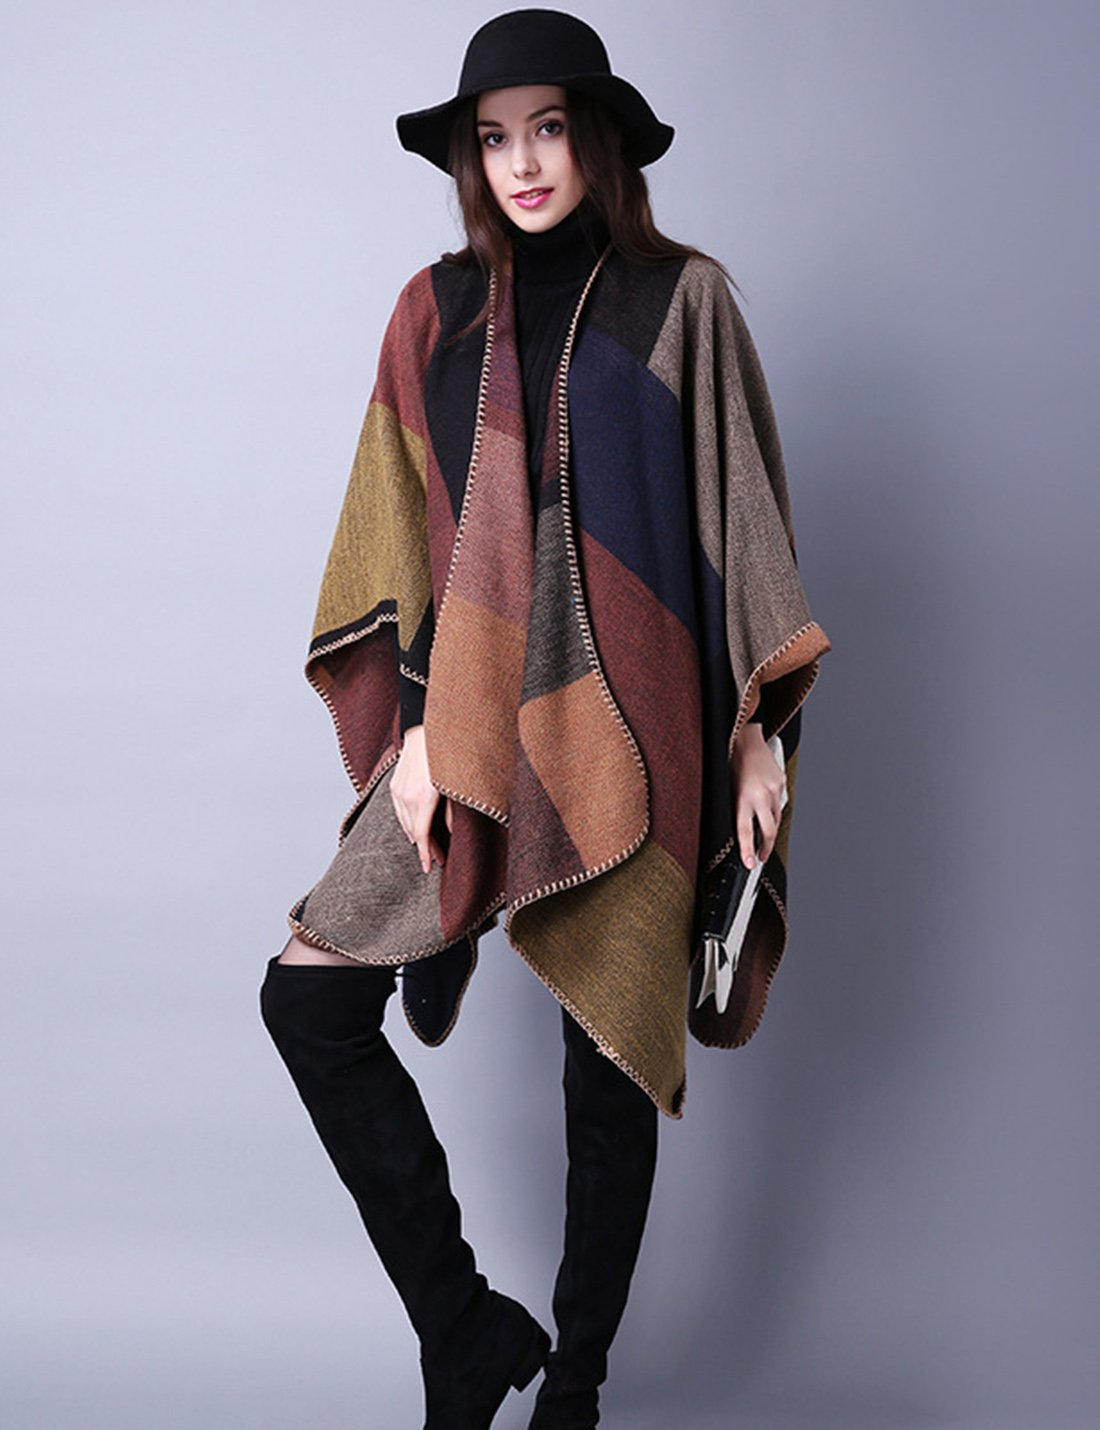 Gihuo Women's Color Block Plaid Open Front Shawl Poncho Cape Wrap Cardigan (Khaki) by Gihuo (Image #5)